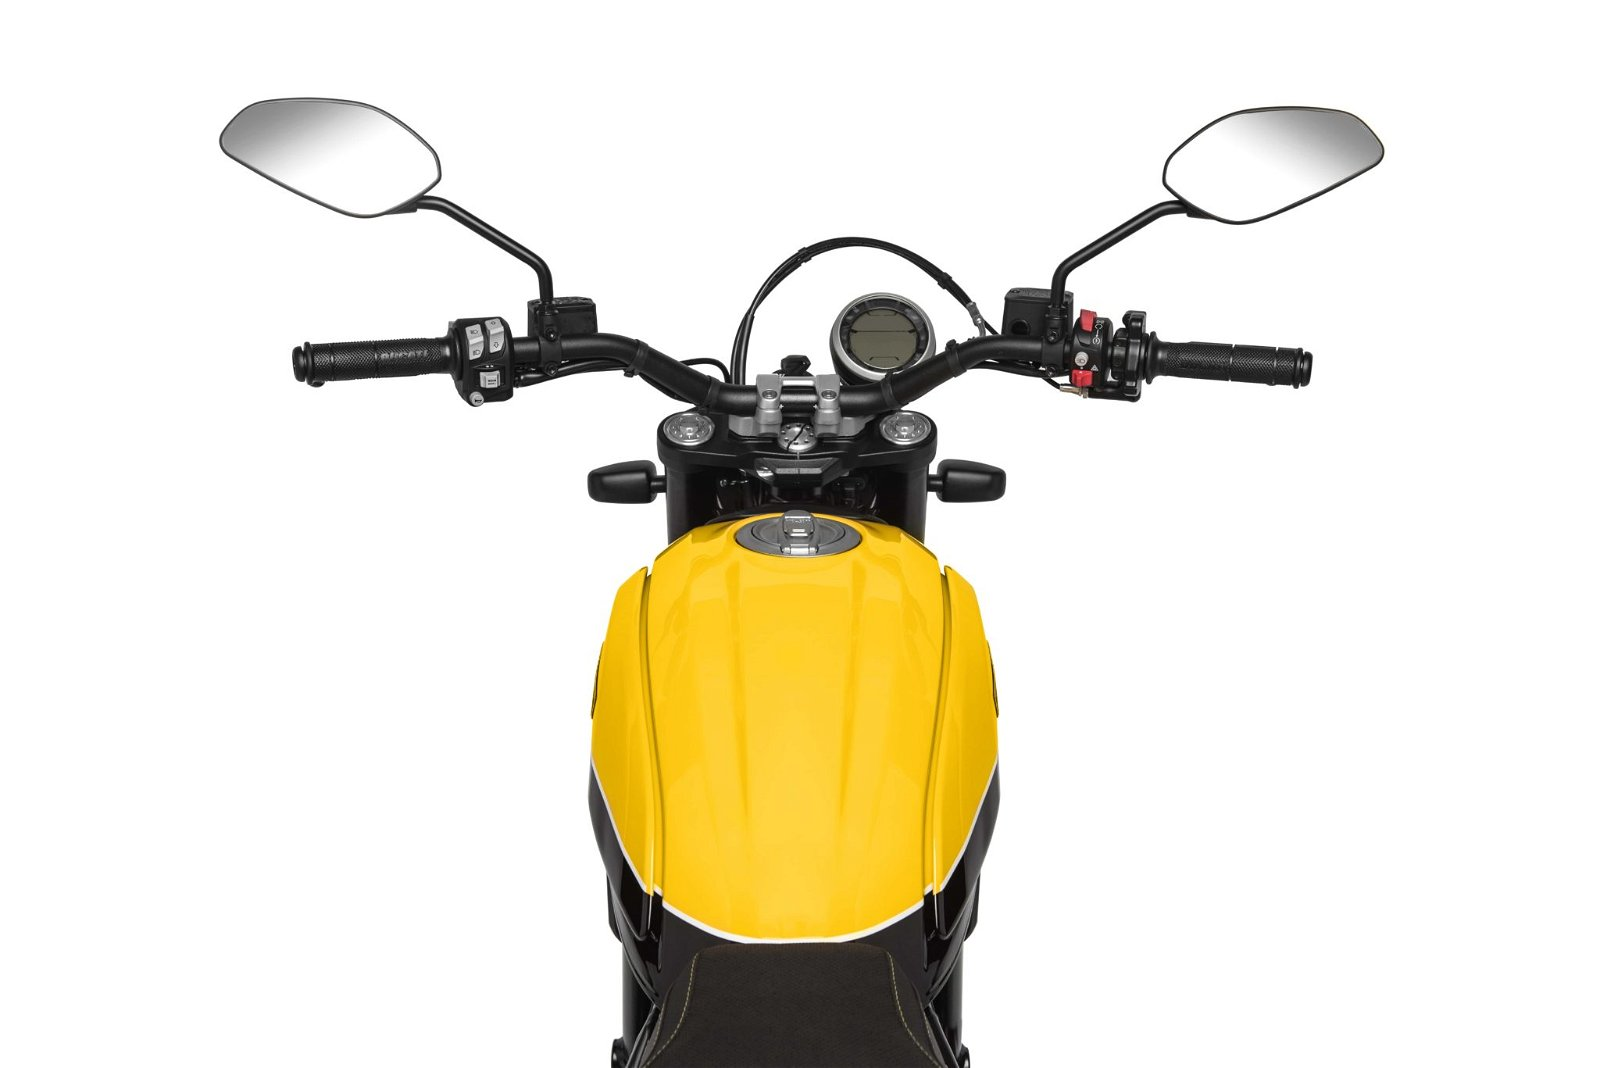 Ducati Scrambler Full Throttle handlebar view